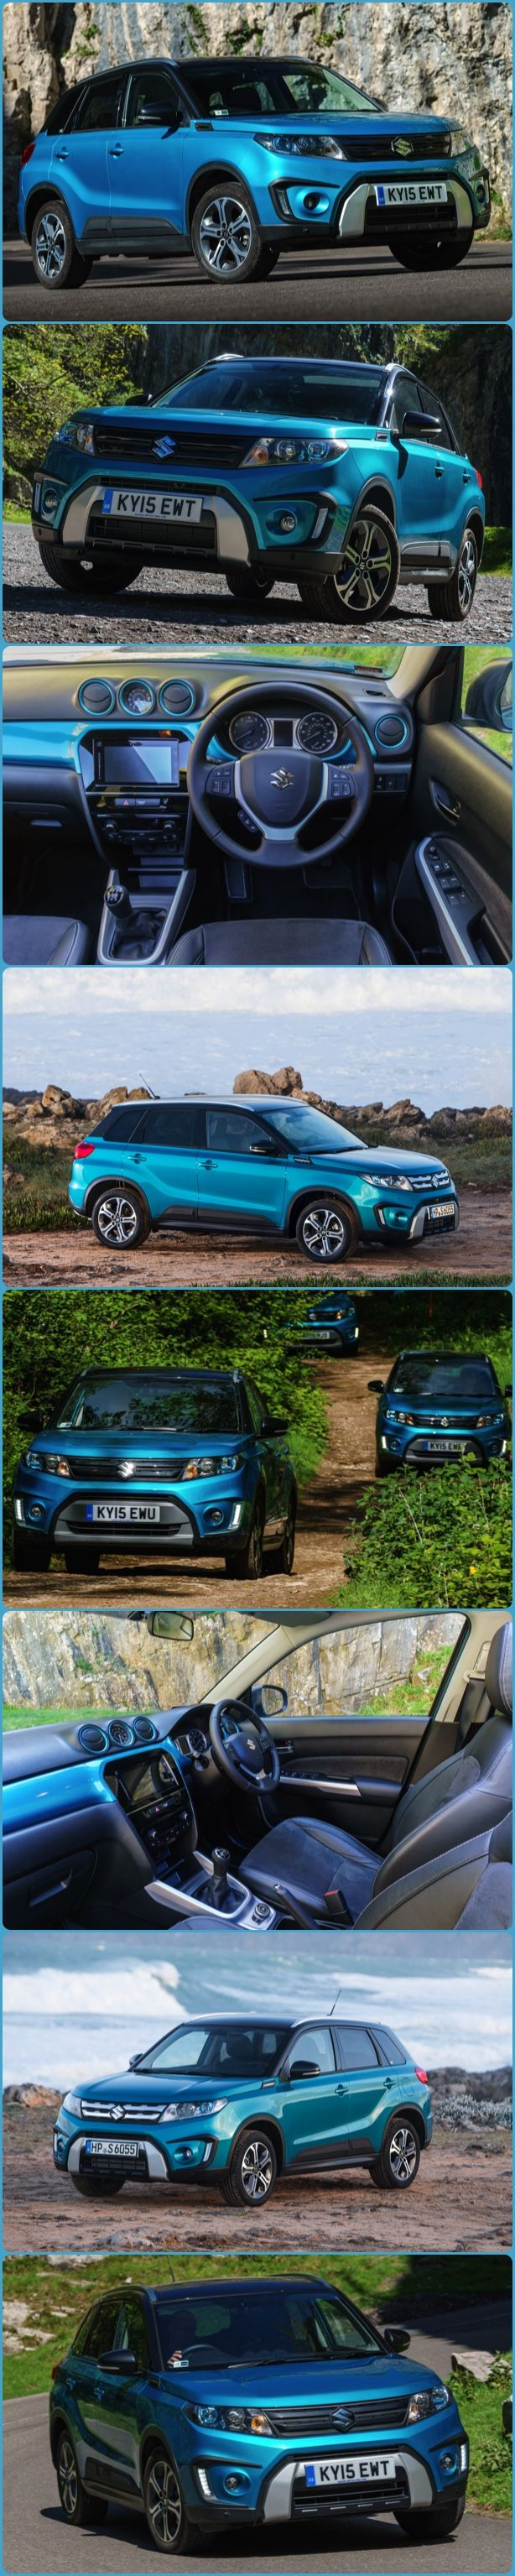 All New Suzuki Vitara Reviewed - Some cars can look great in photos. Here's one. On the road it goes as well as it looks.  Just launched into the UK, the All New Suzuki Vitara SUV. Prices start at just £13,999 and the cheapest version, the SZ4, now has seven airbags, including a driver's knee bag, as standard equipment. Also standard are Bluetooth and DAB radio.  #Suzuki #Vitara #CarReviews #GoodLooking